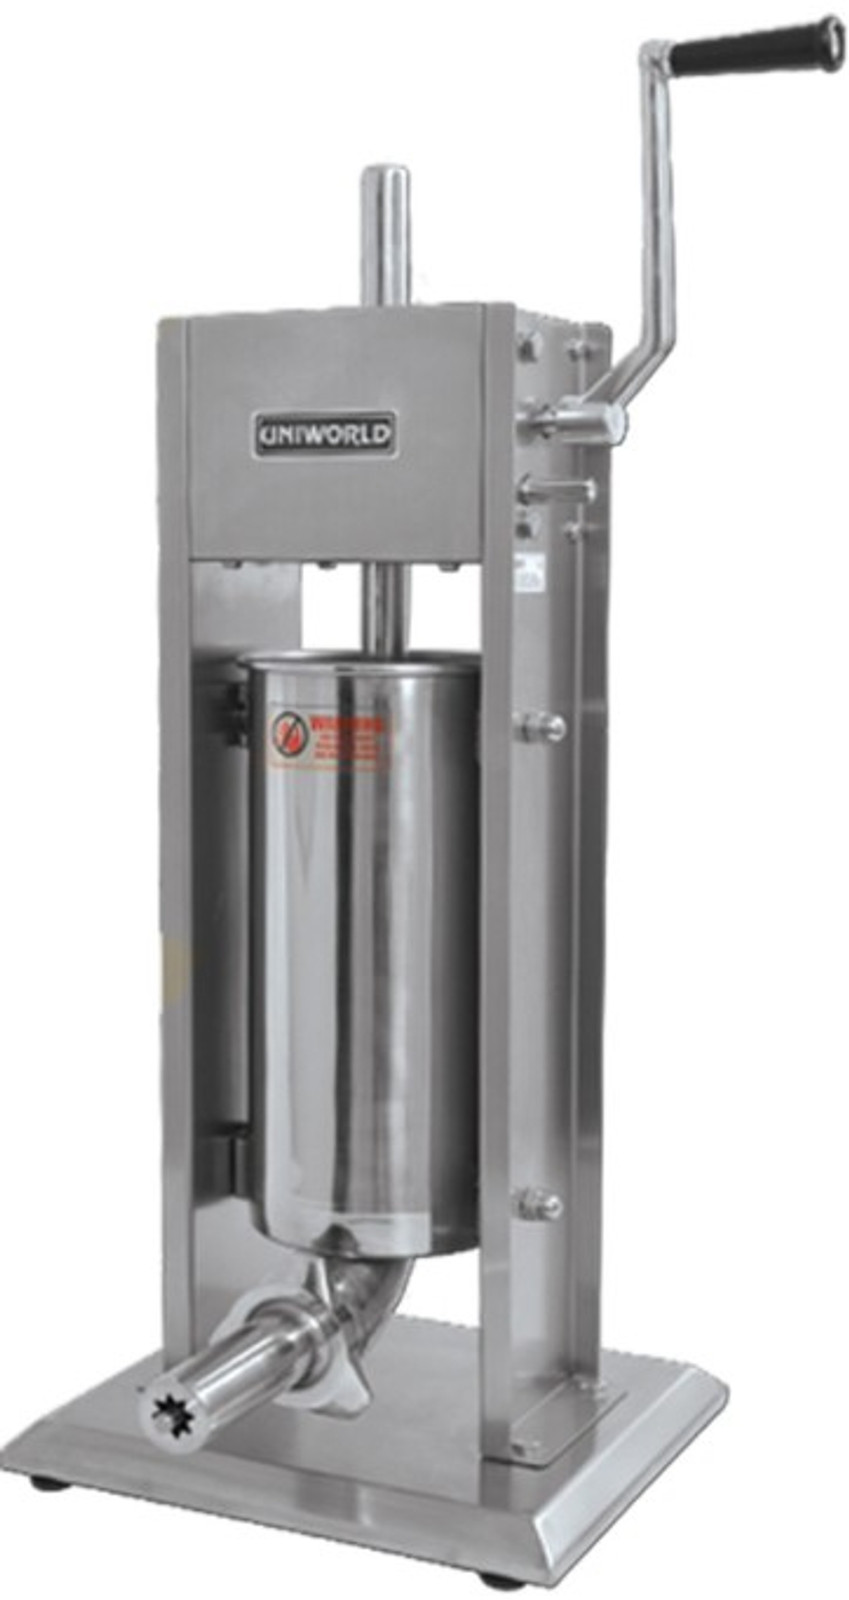 UNIWORLD CHURRO MAKER 5 LBS *CALL FOR ACCURATE PRICING*